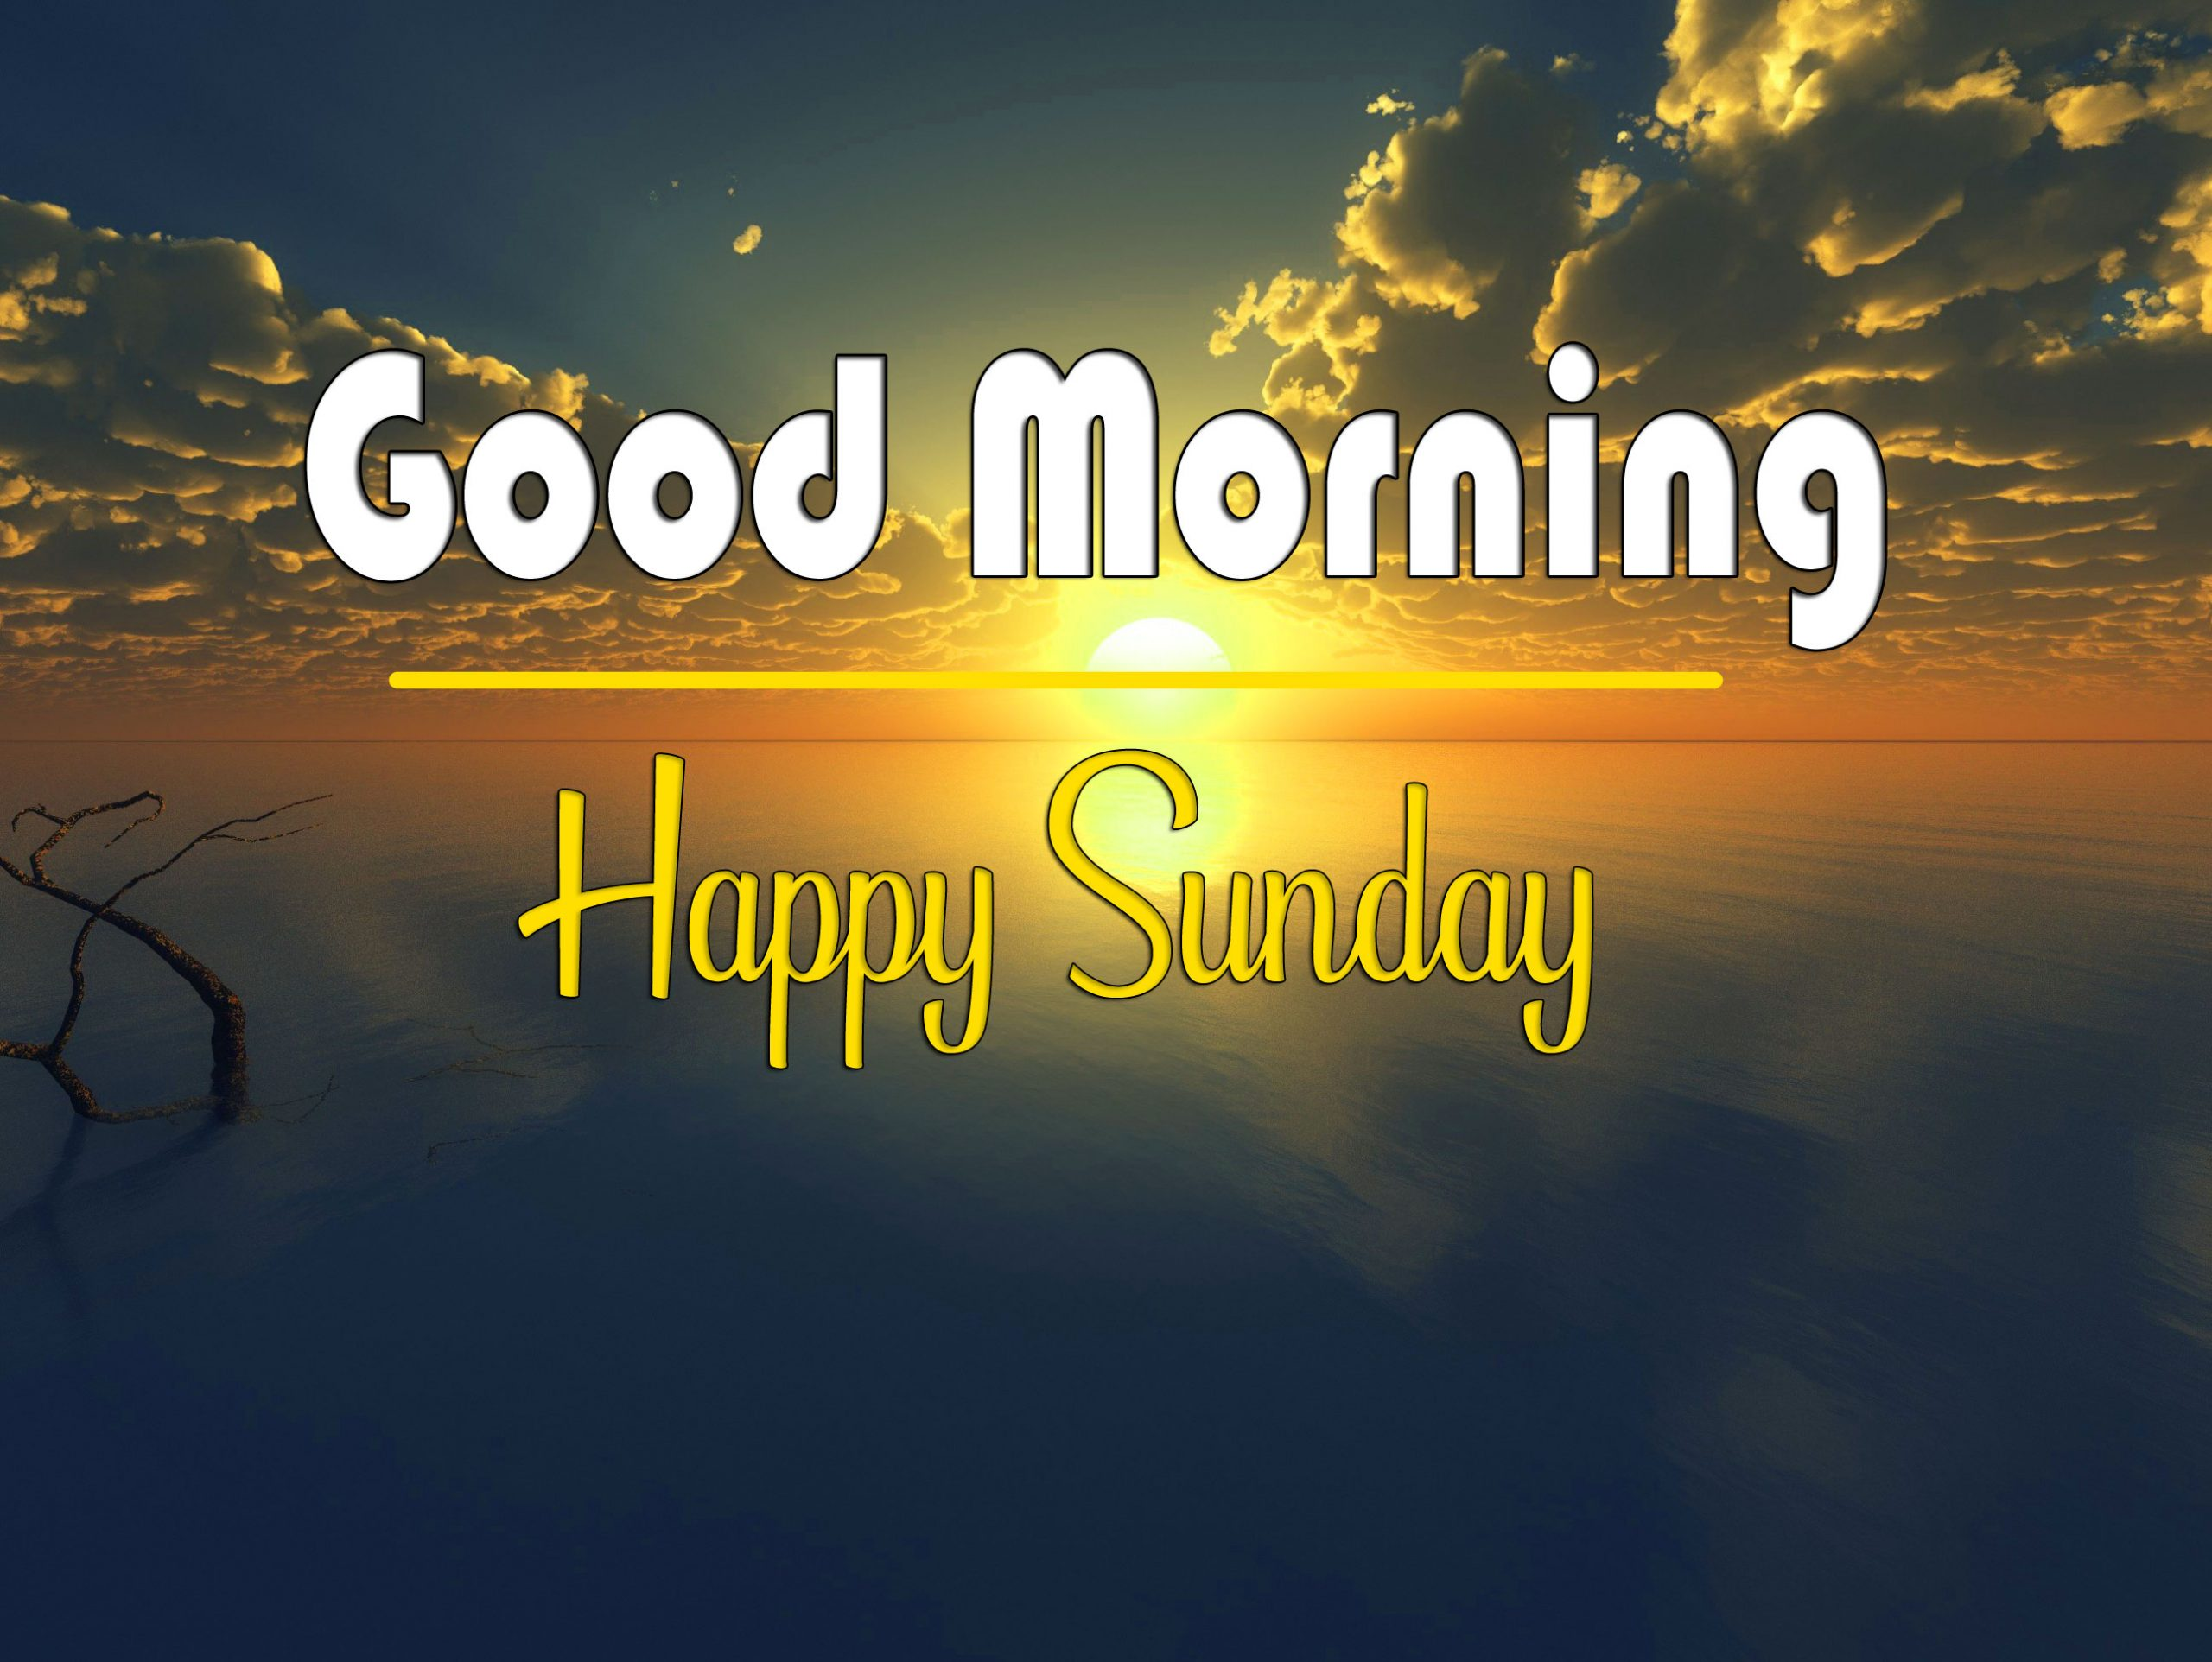 My Friend free HD sunday good morning Images